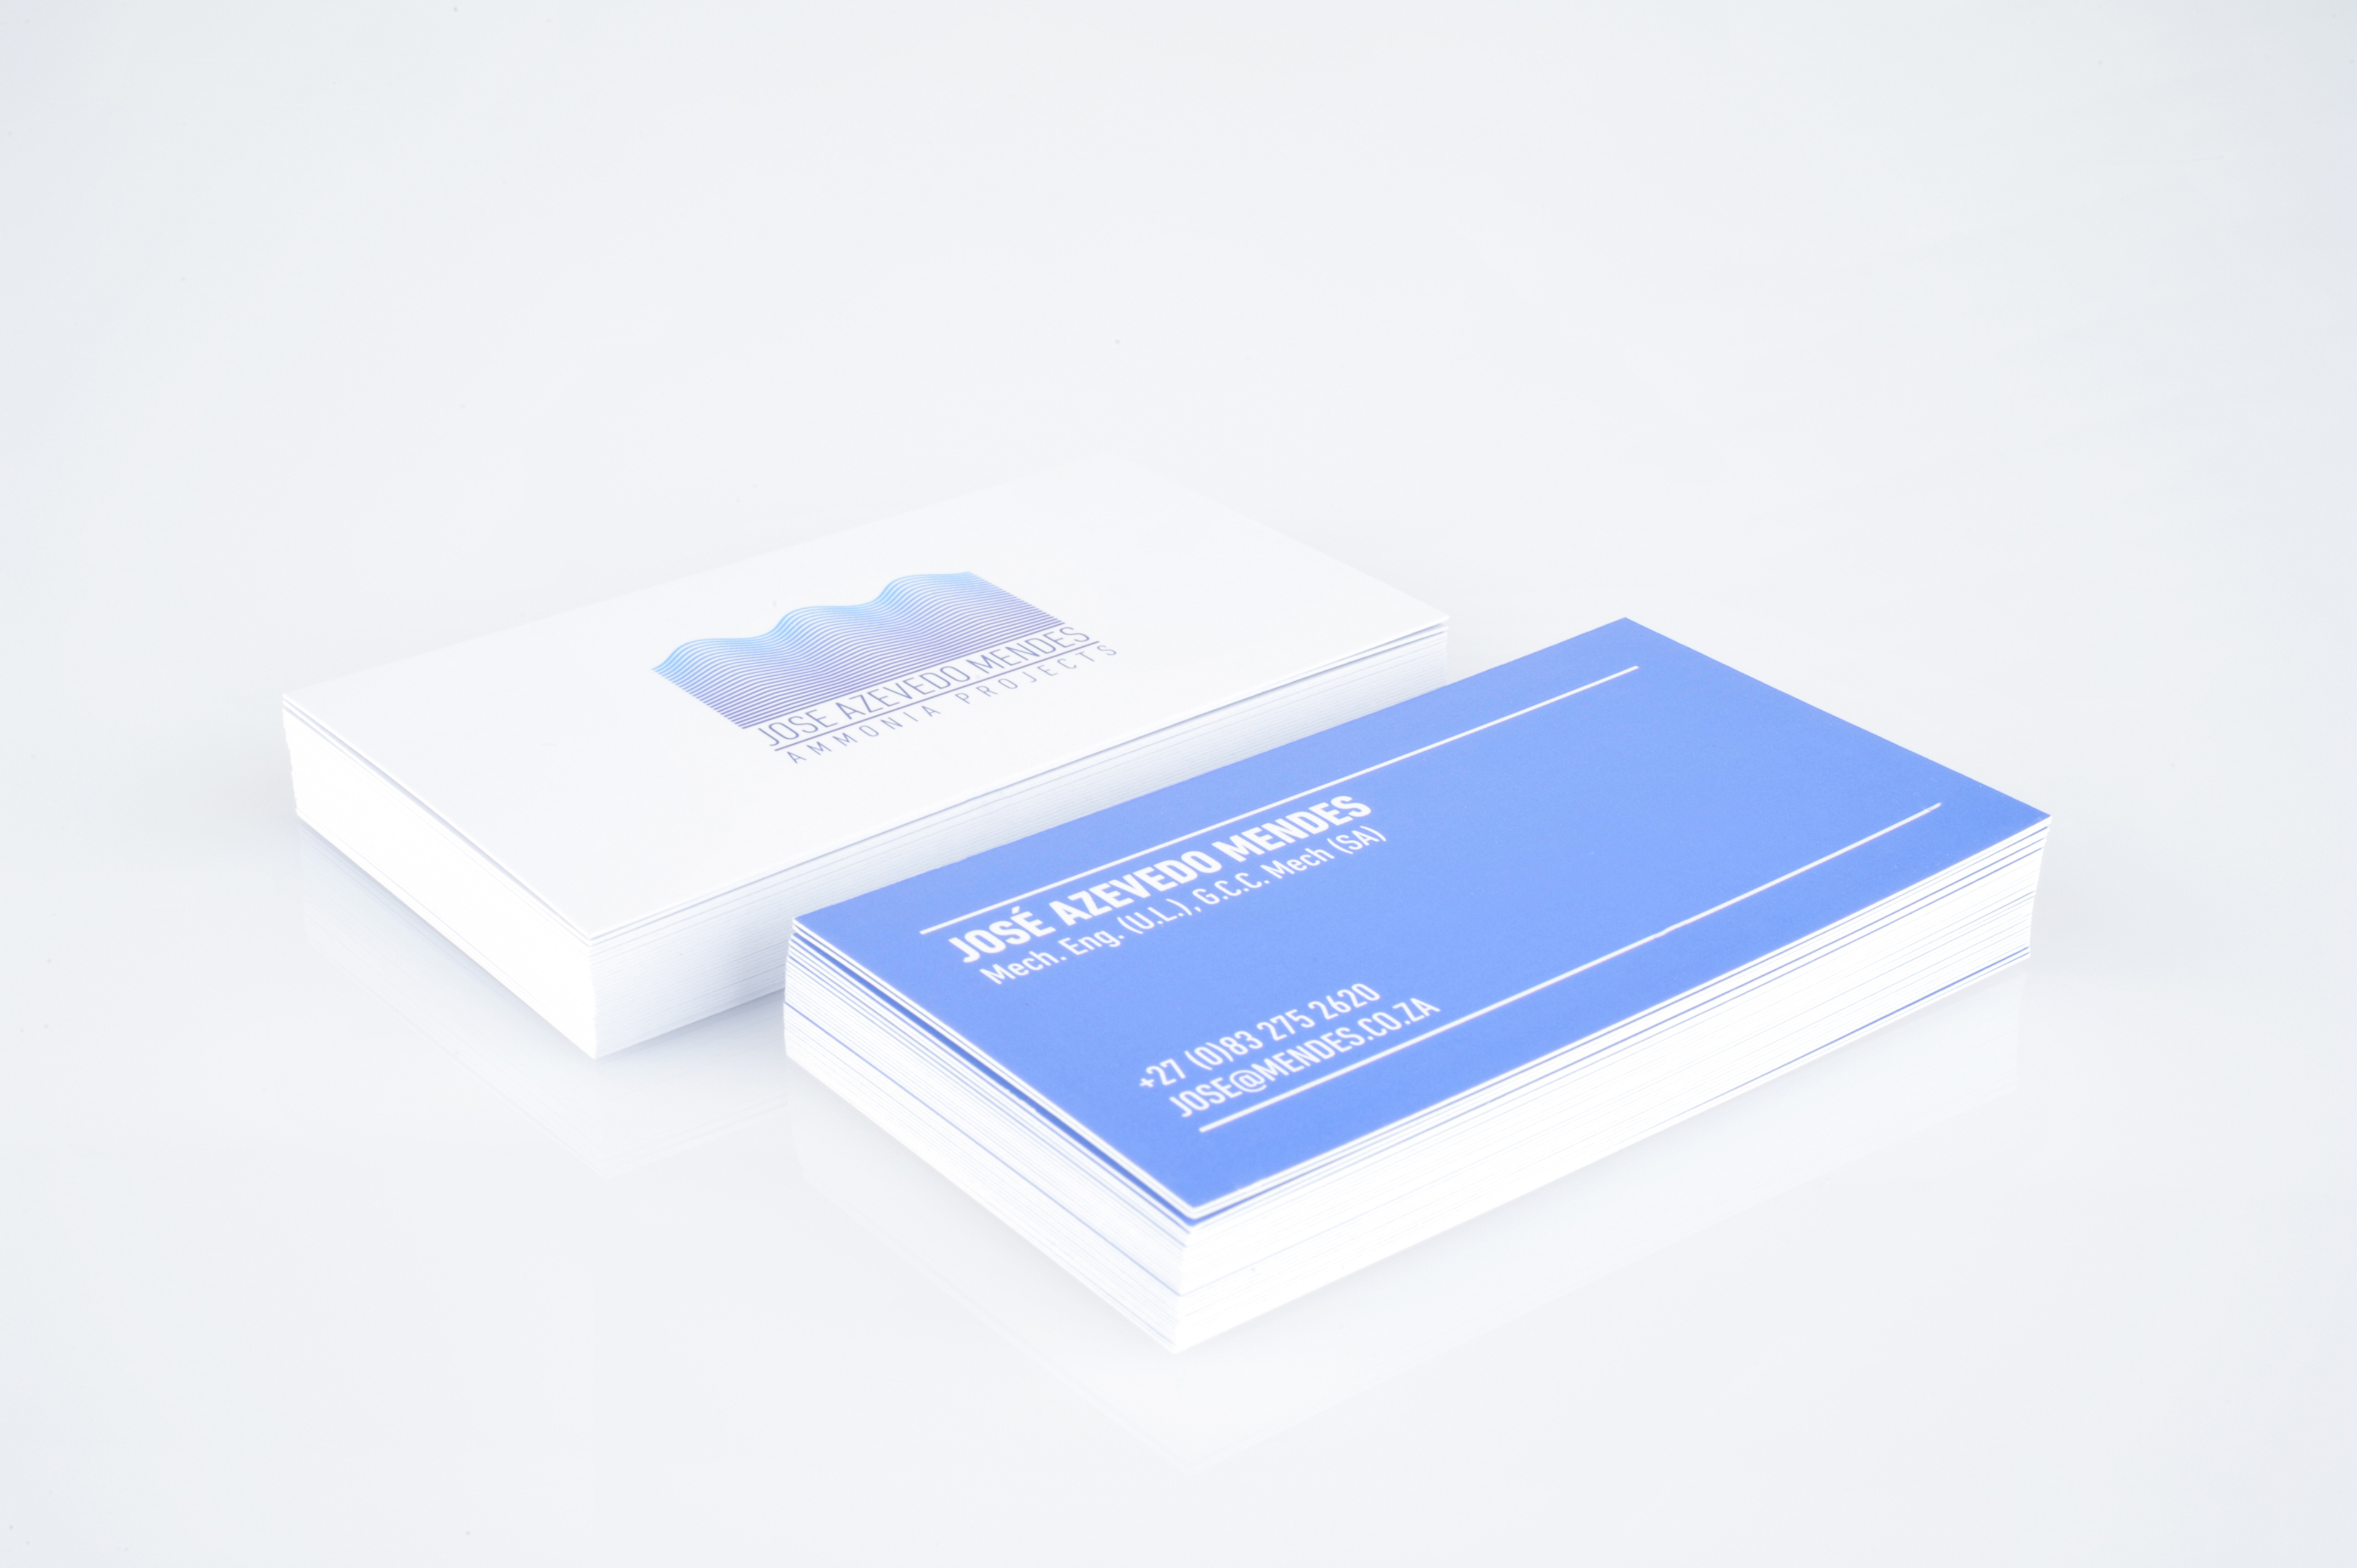 Rowan toselli jos mendes business cards and logo reheart Images